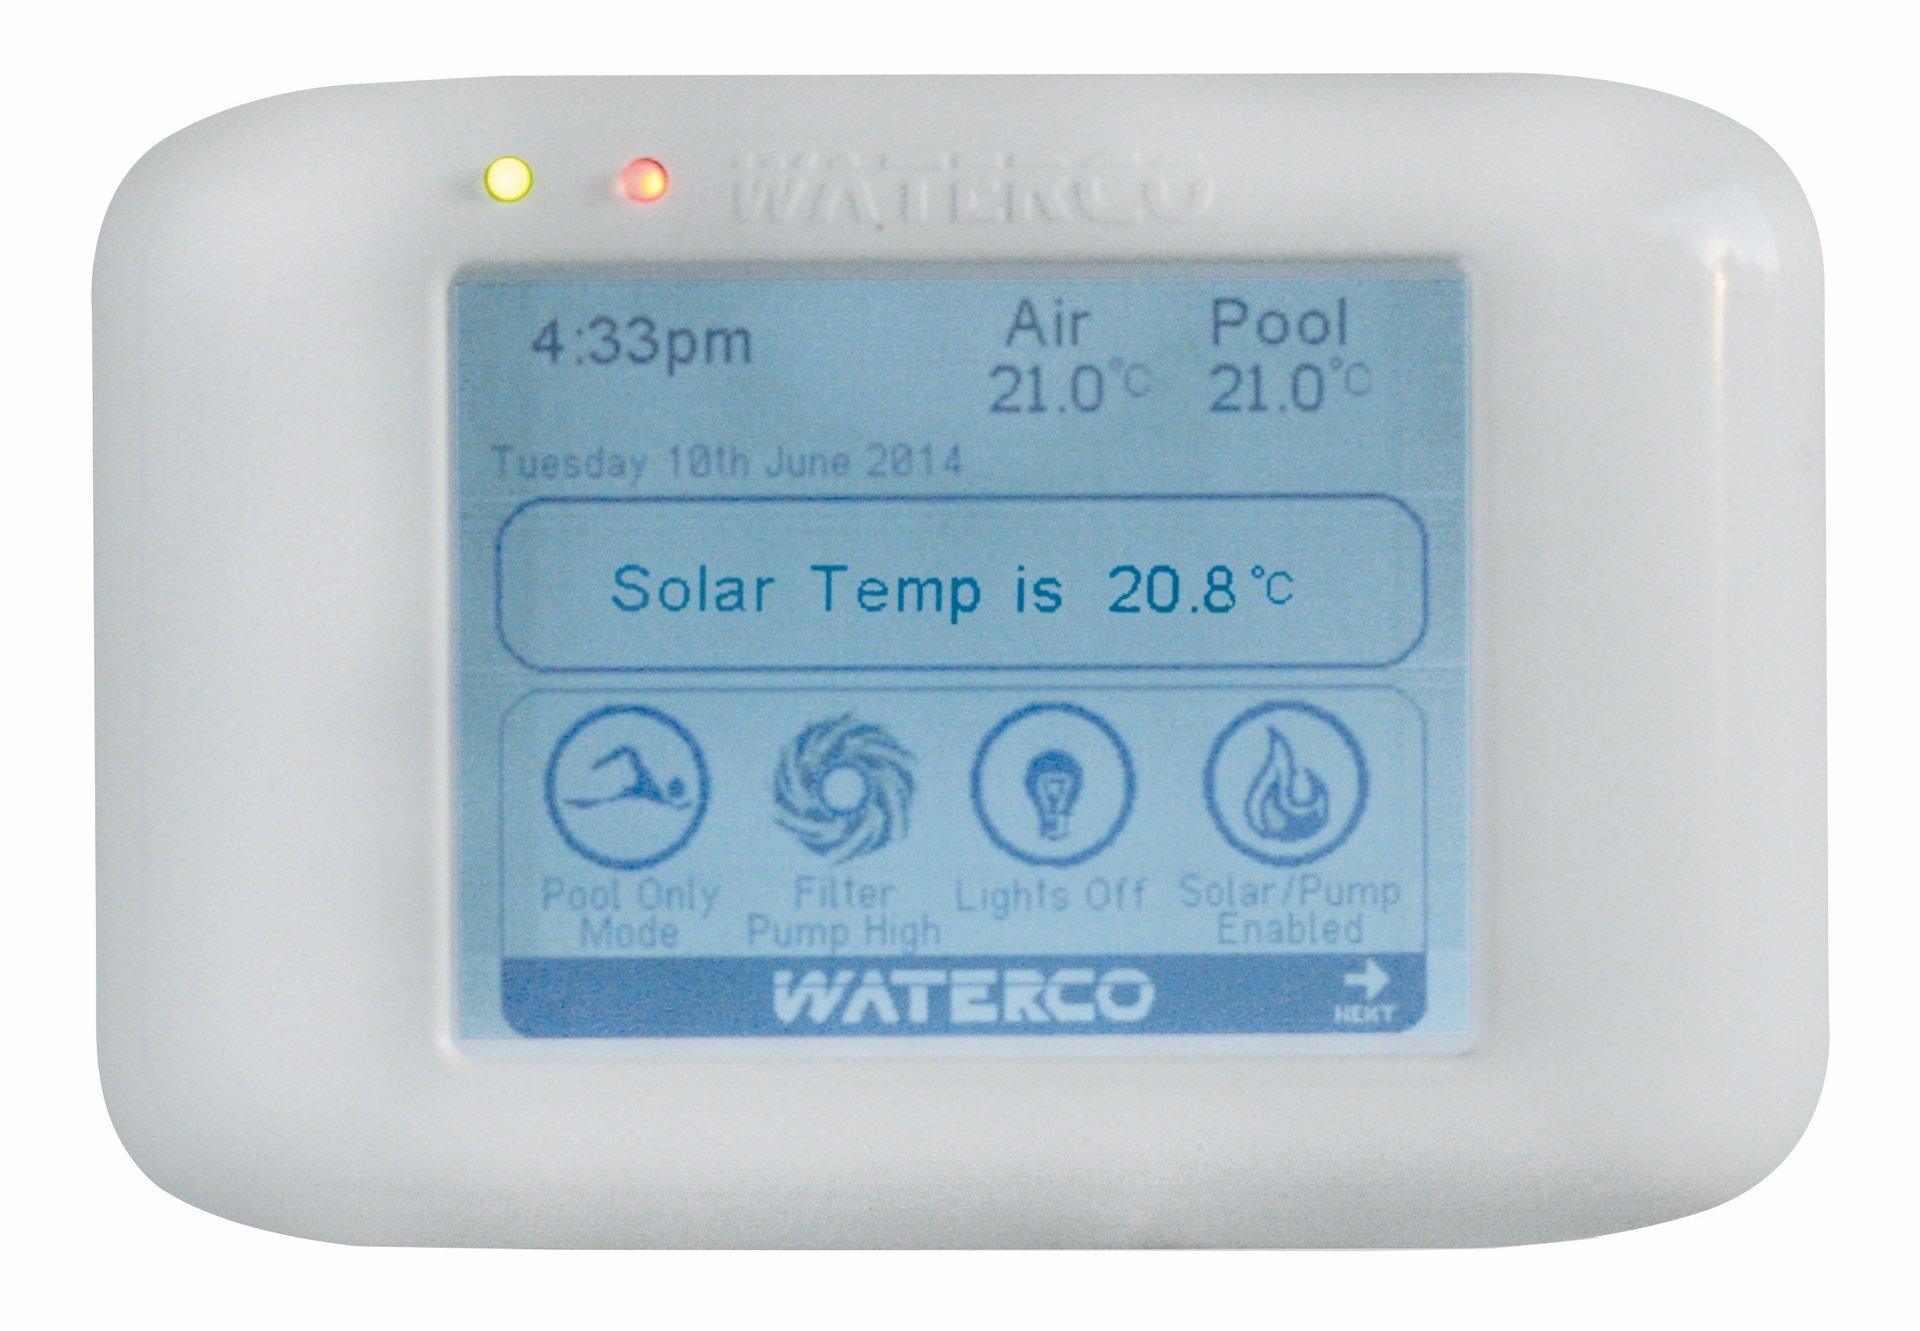 Waterco Aquamaster Pool and Spa Automation System - Infloor Pool